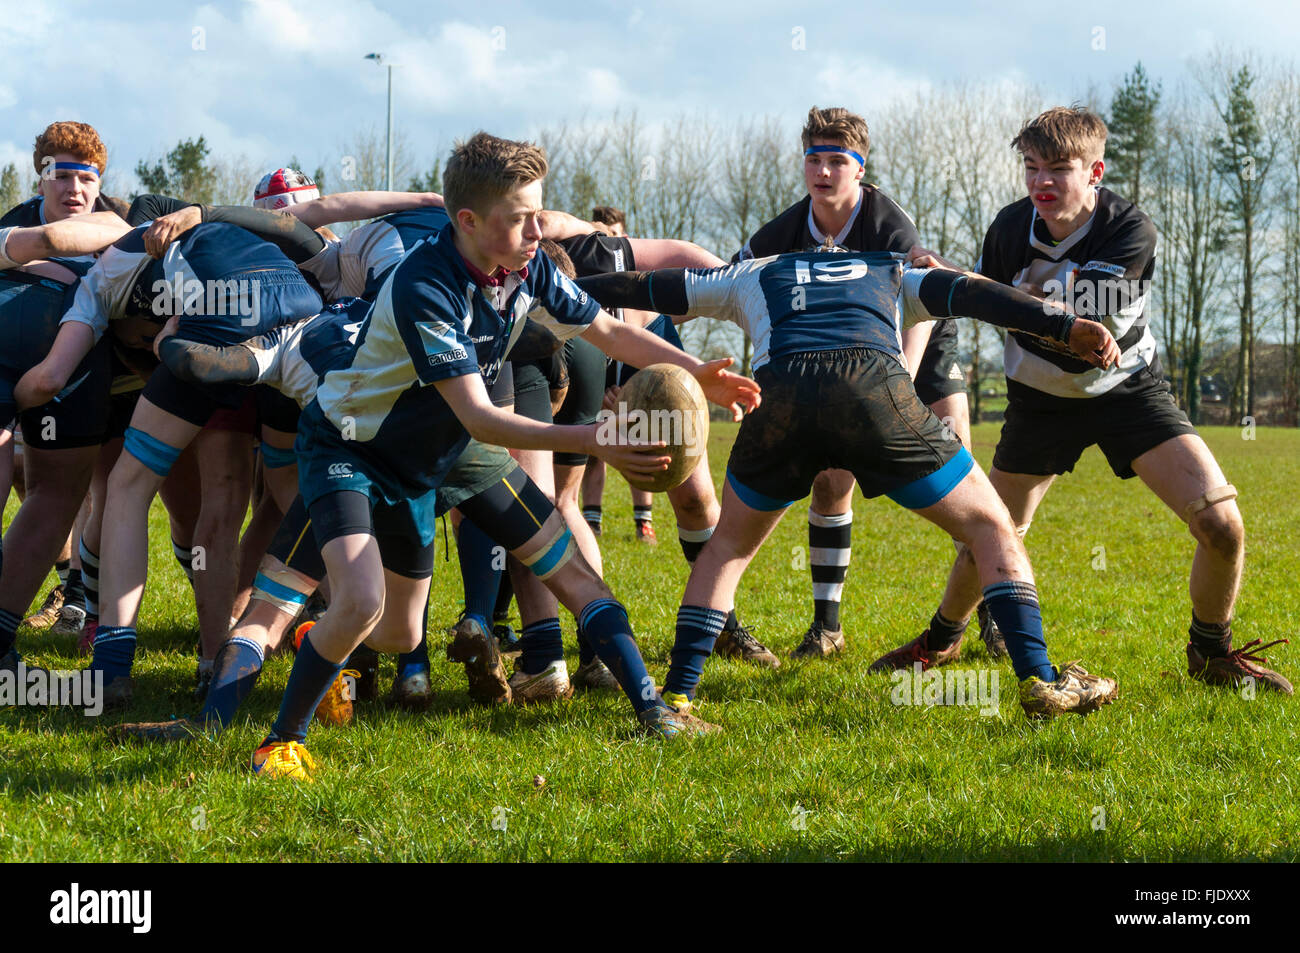 Under 16 age group rugby union match  between Walcot RFC and Avonvale RFC in Bath, UK - Stock Image